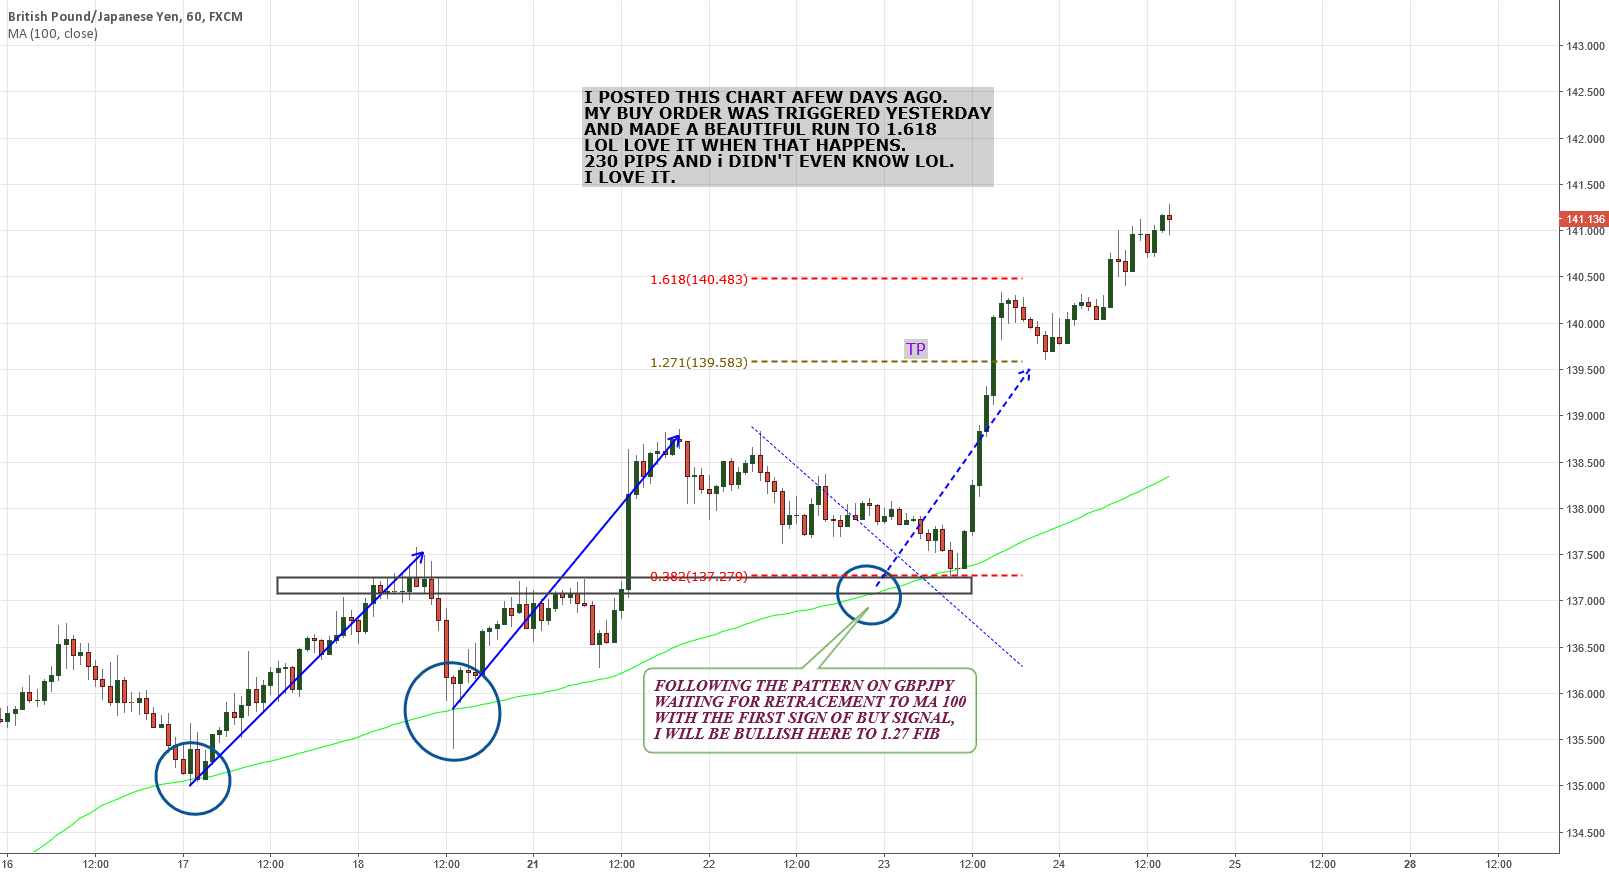 GBPJPY moved as it was plnned